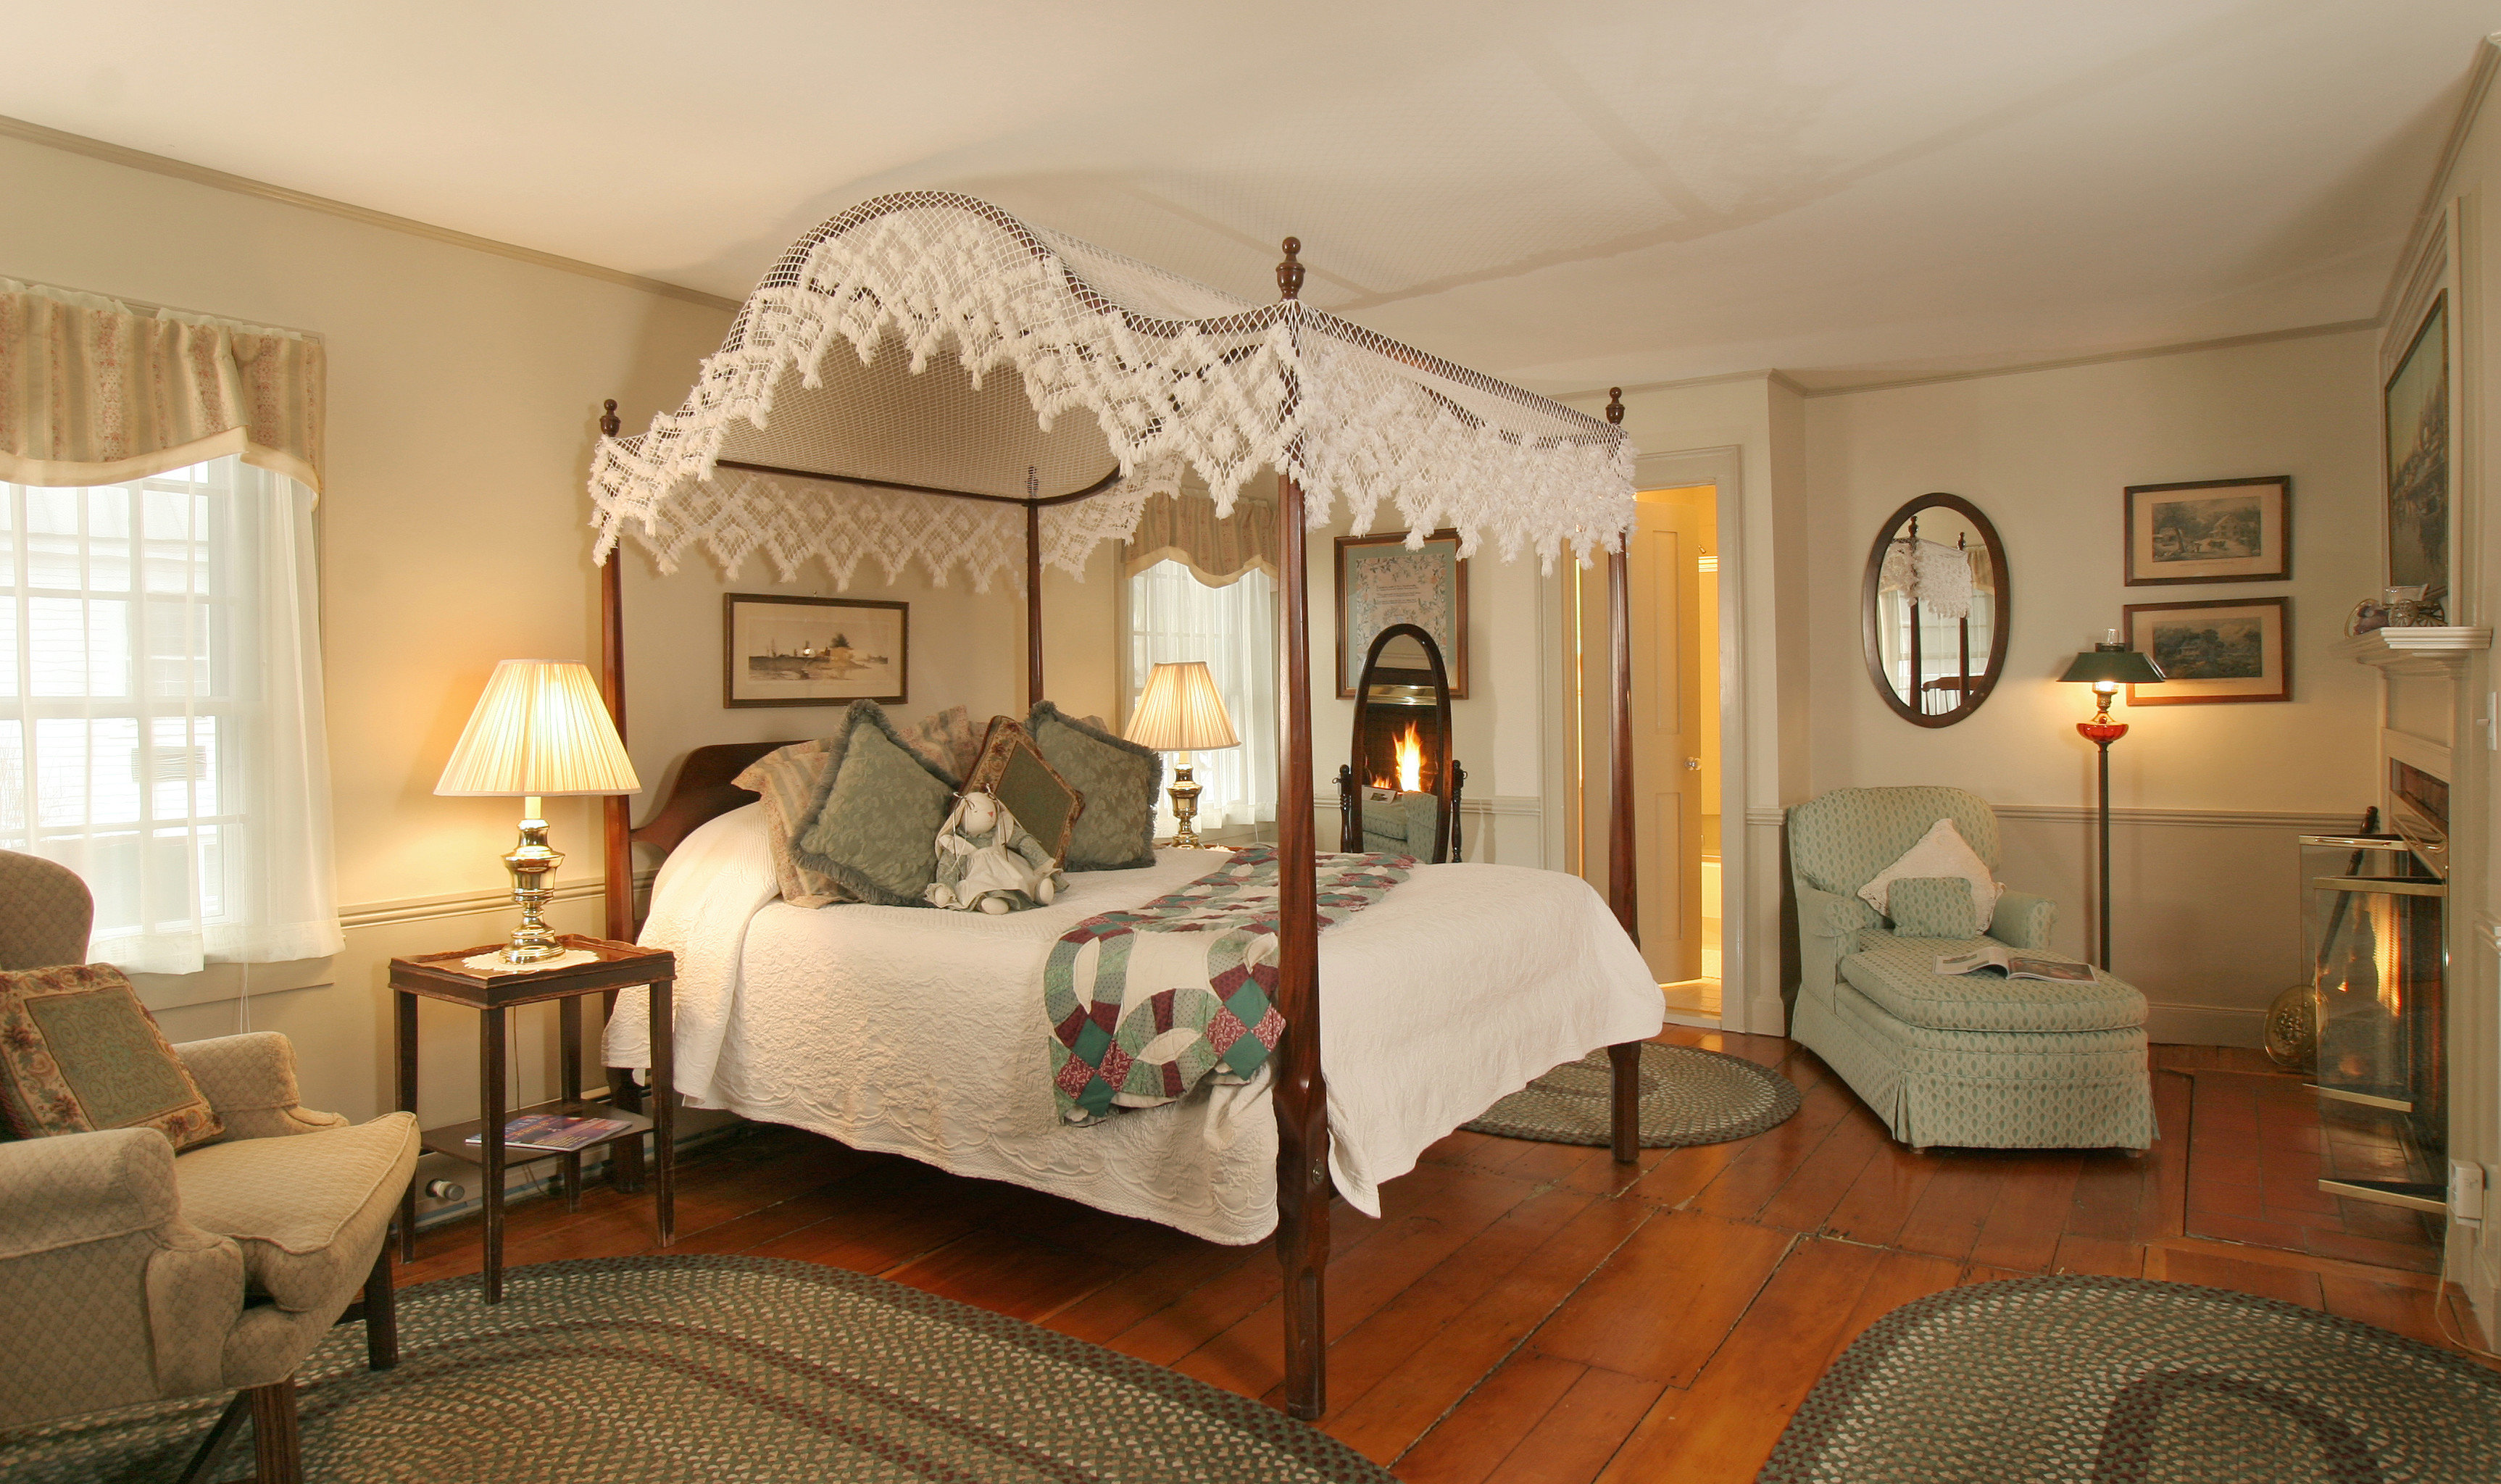 Bedroom Boutique Hotels Classic Country Hotels Inn Romantic Getaways Romantic Hotels Suite property chair living room cottage home Villa nice